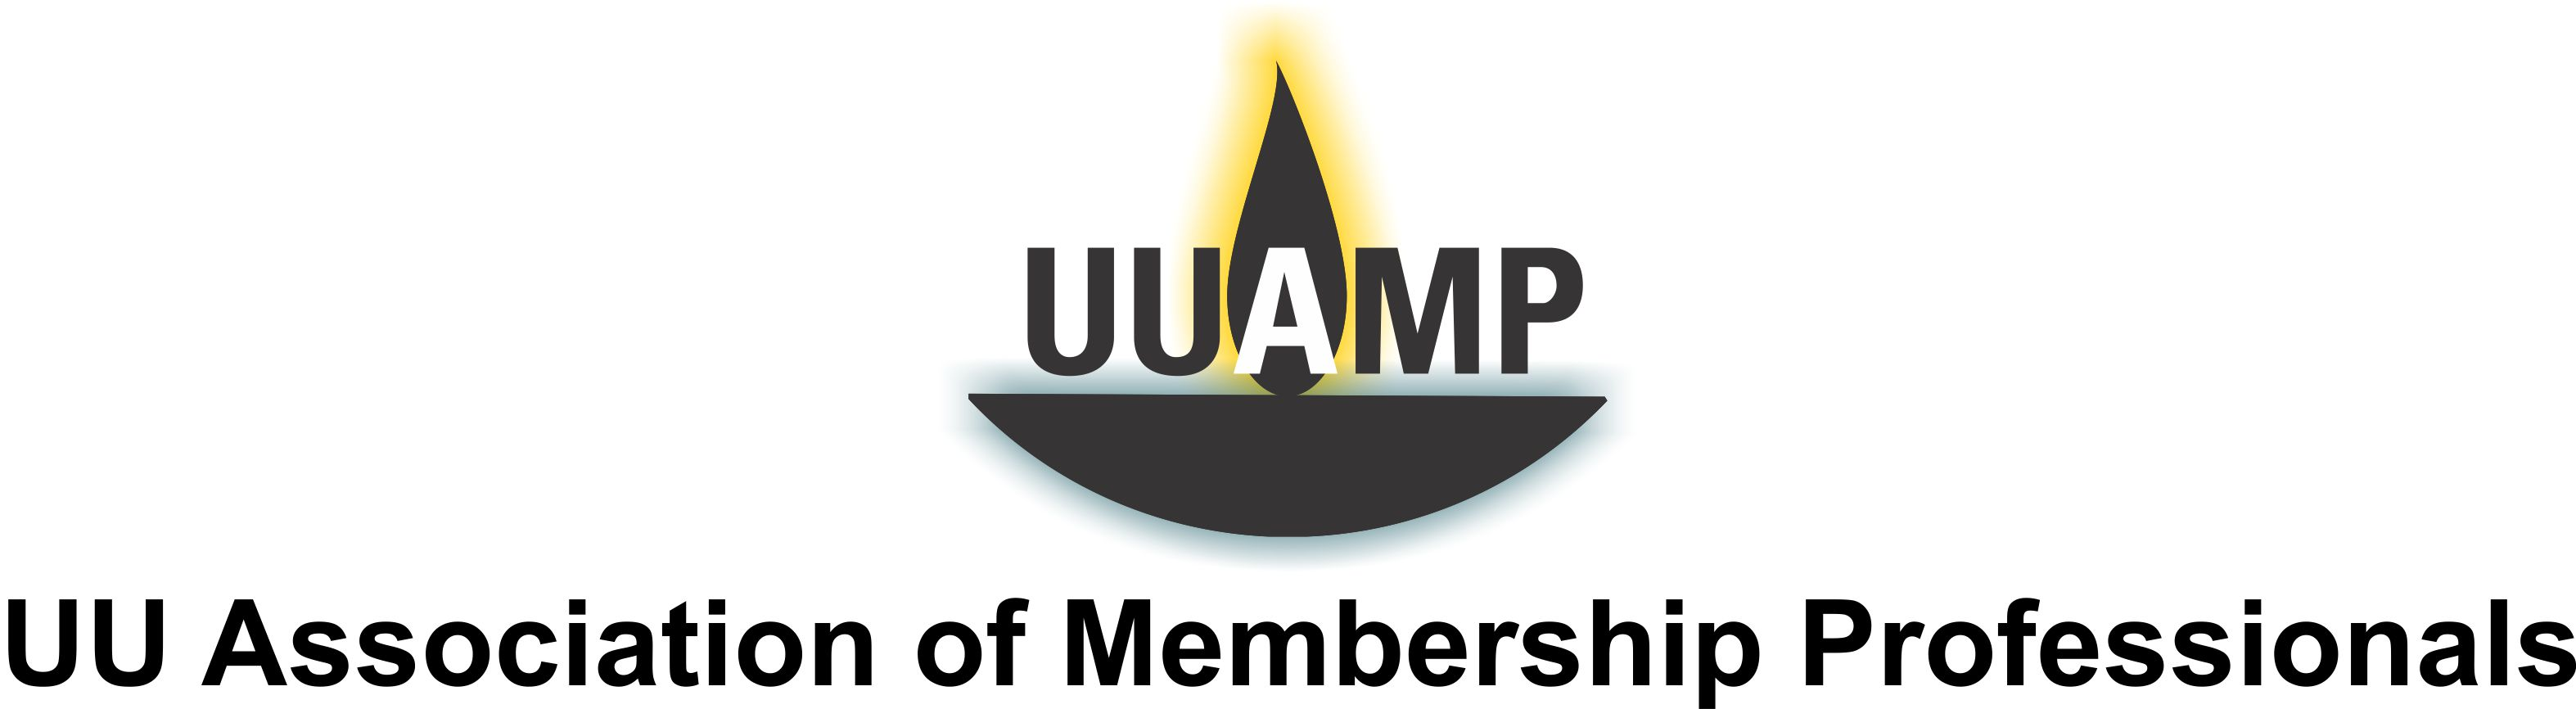 uuamp-logo-wide